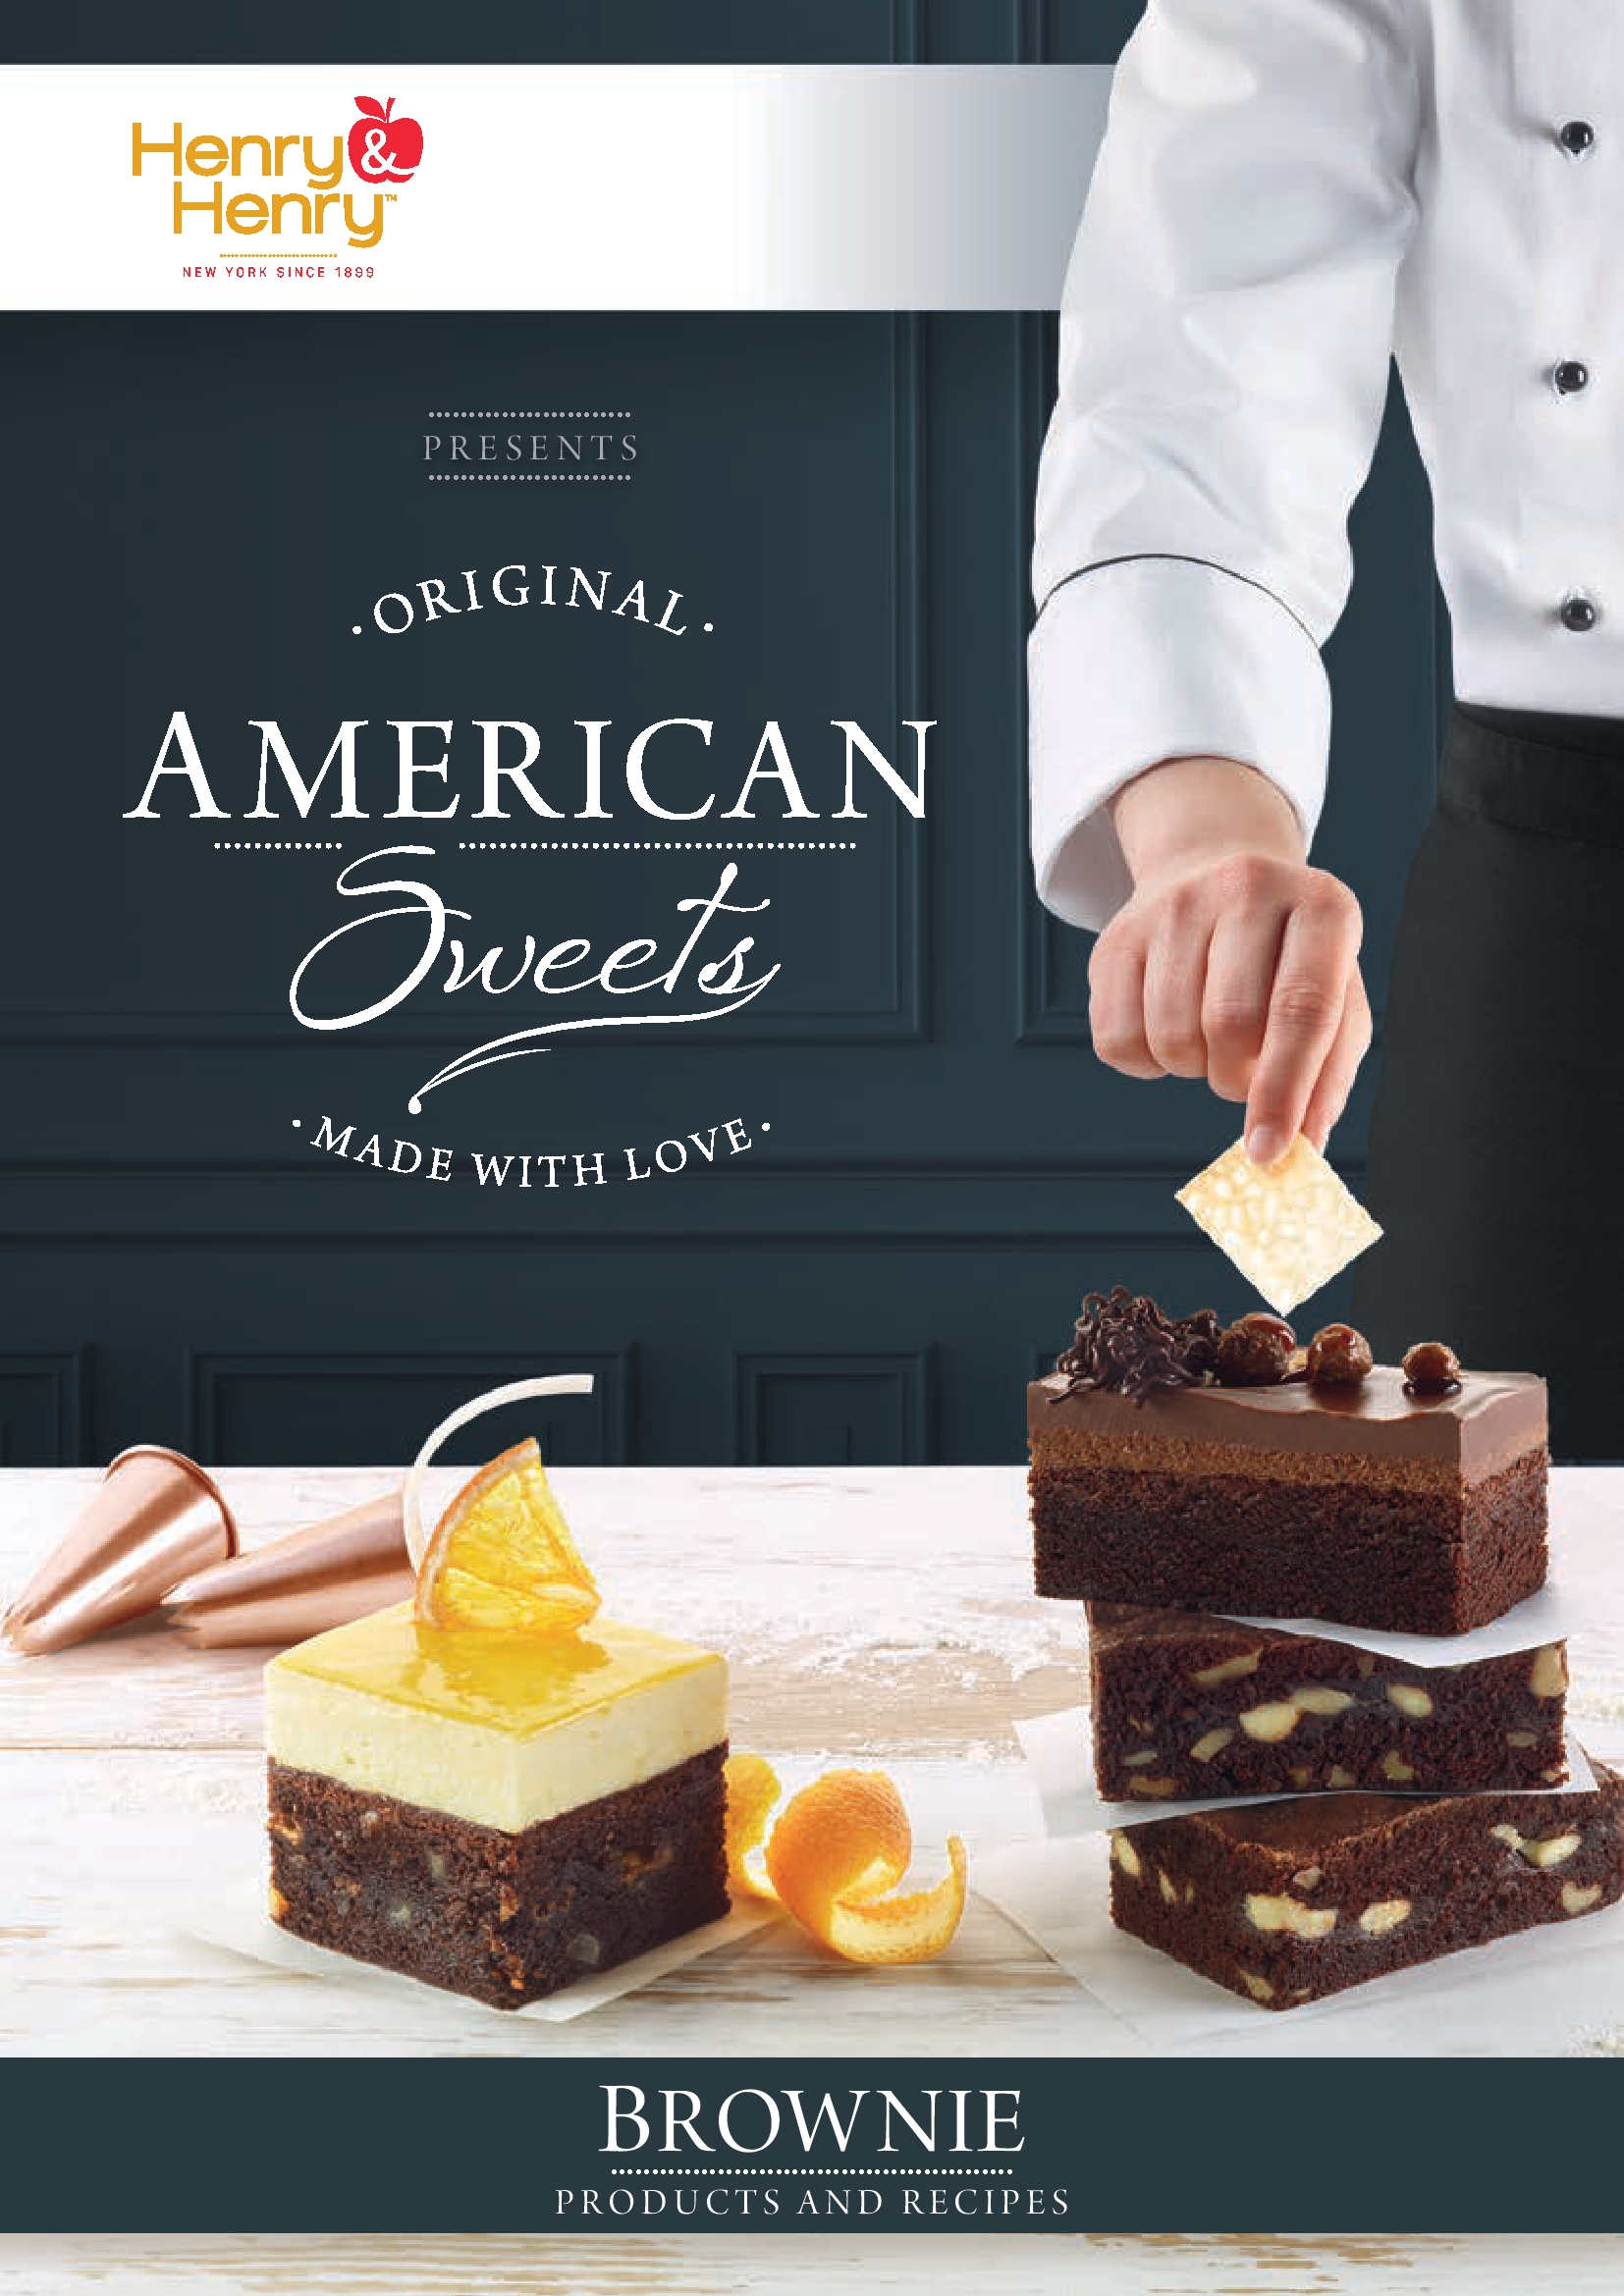 RZ_23356007_American_Sweets_Brownie_EN0001